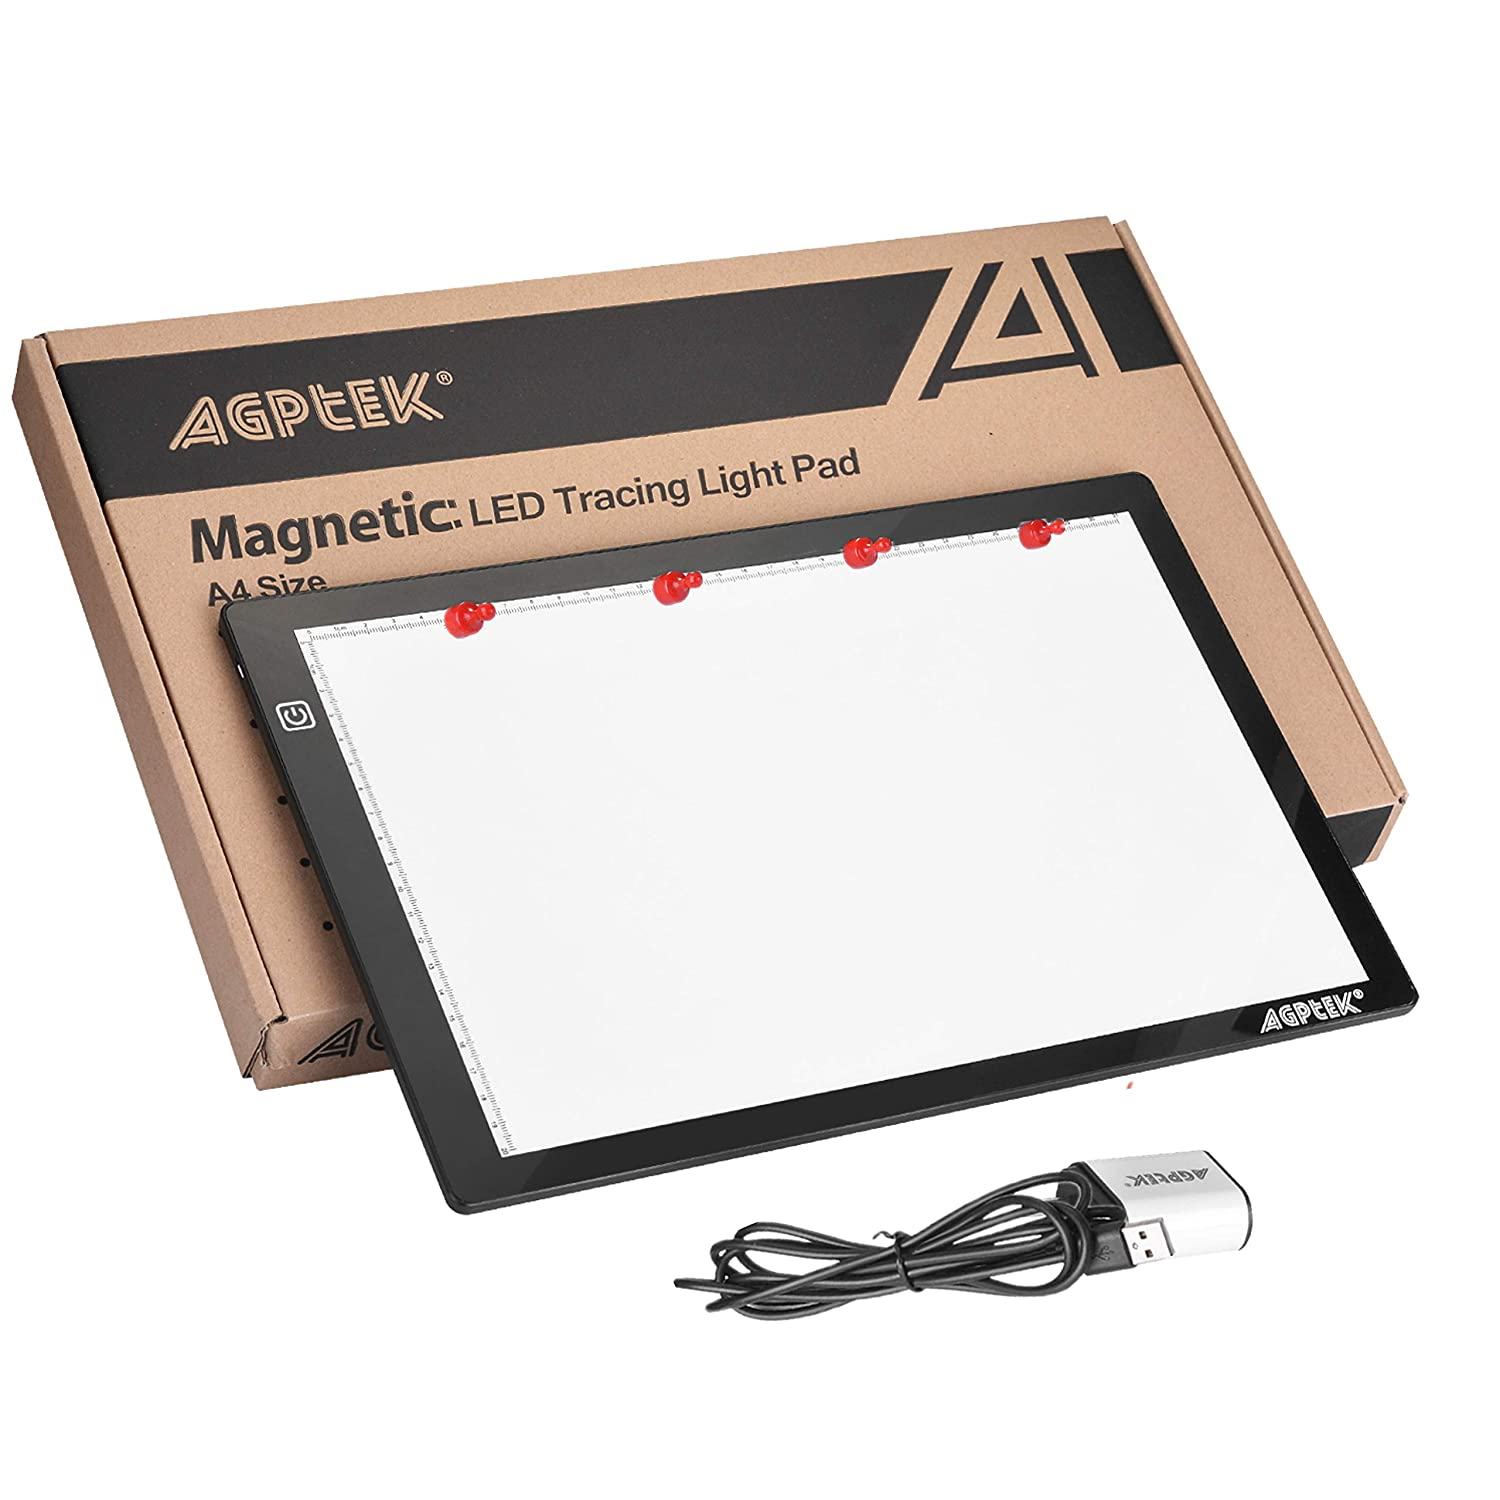 AGPtEK LED Tracing Light Box 14.7 Inch X 9.45 Inch Drawing Tablet Pad Adjustable Brightness For Sketching Drawing Projects HL0163-BTS1